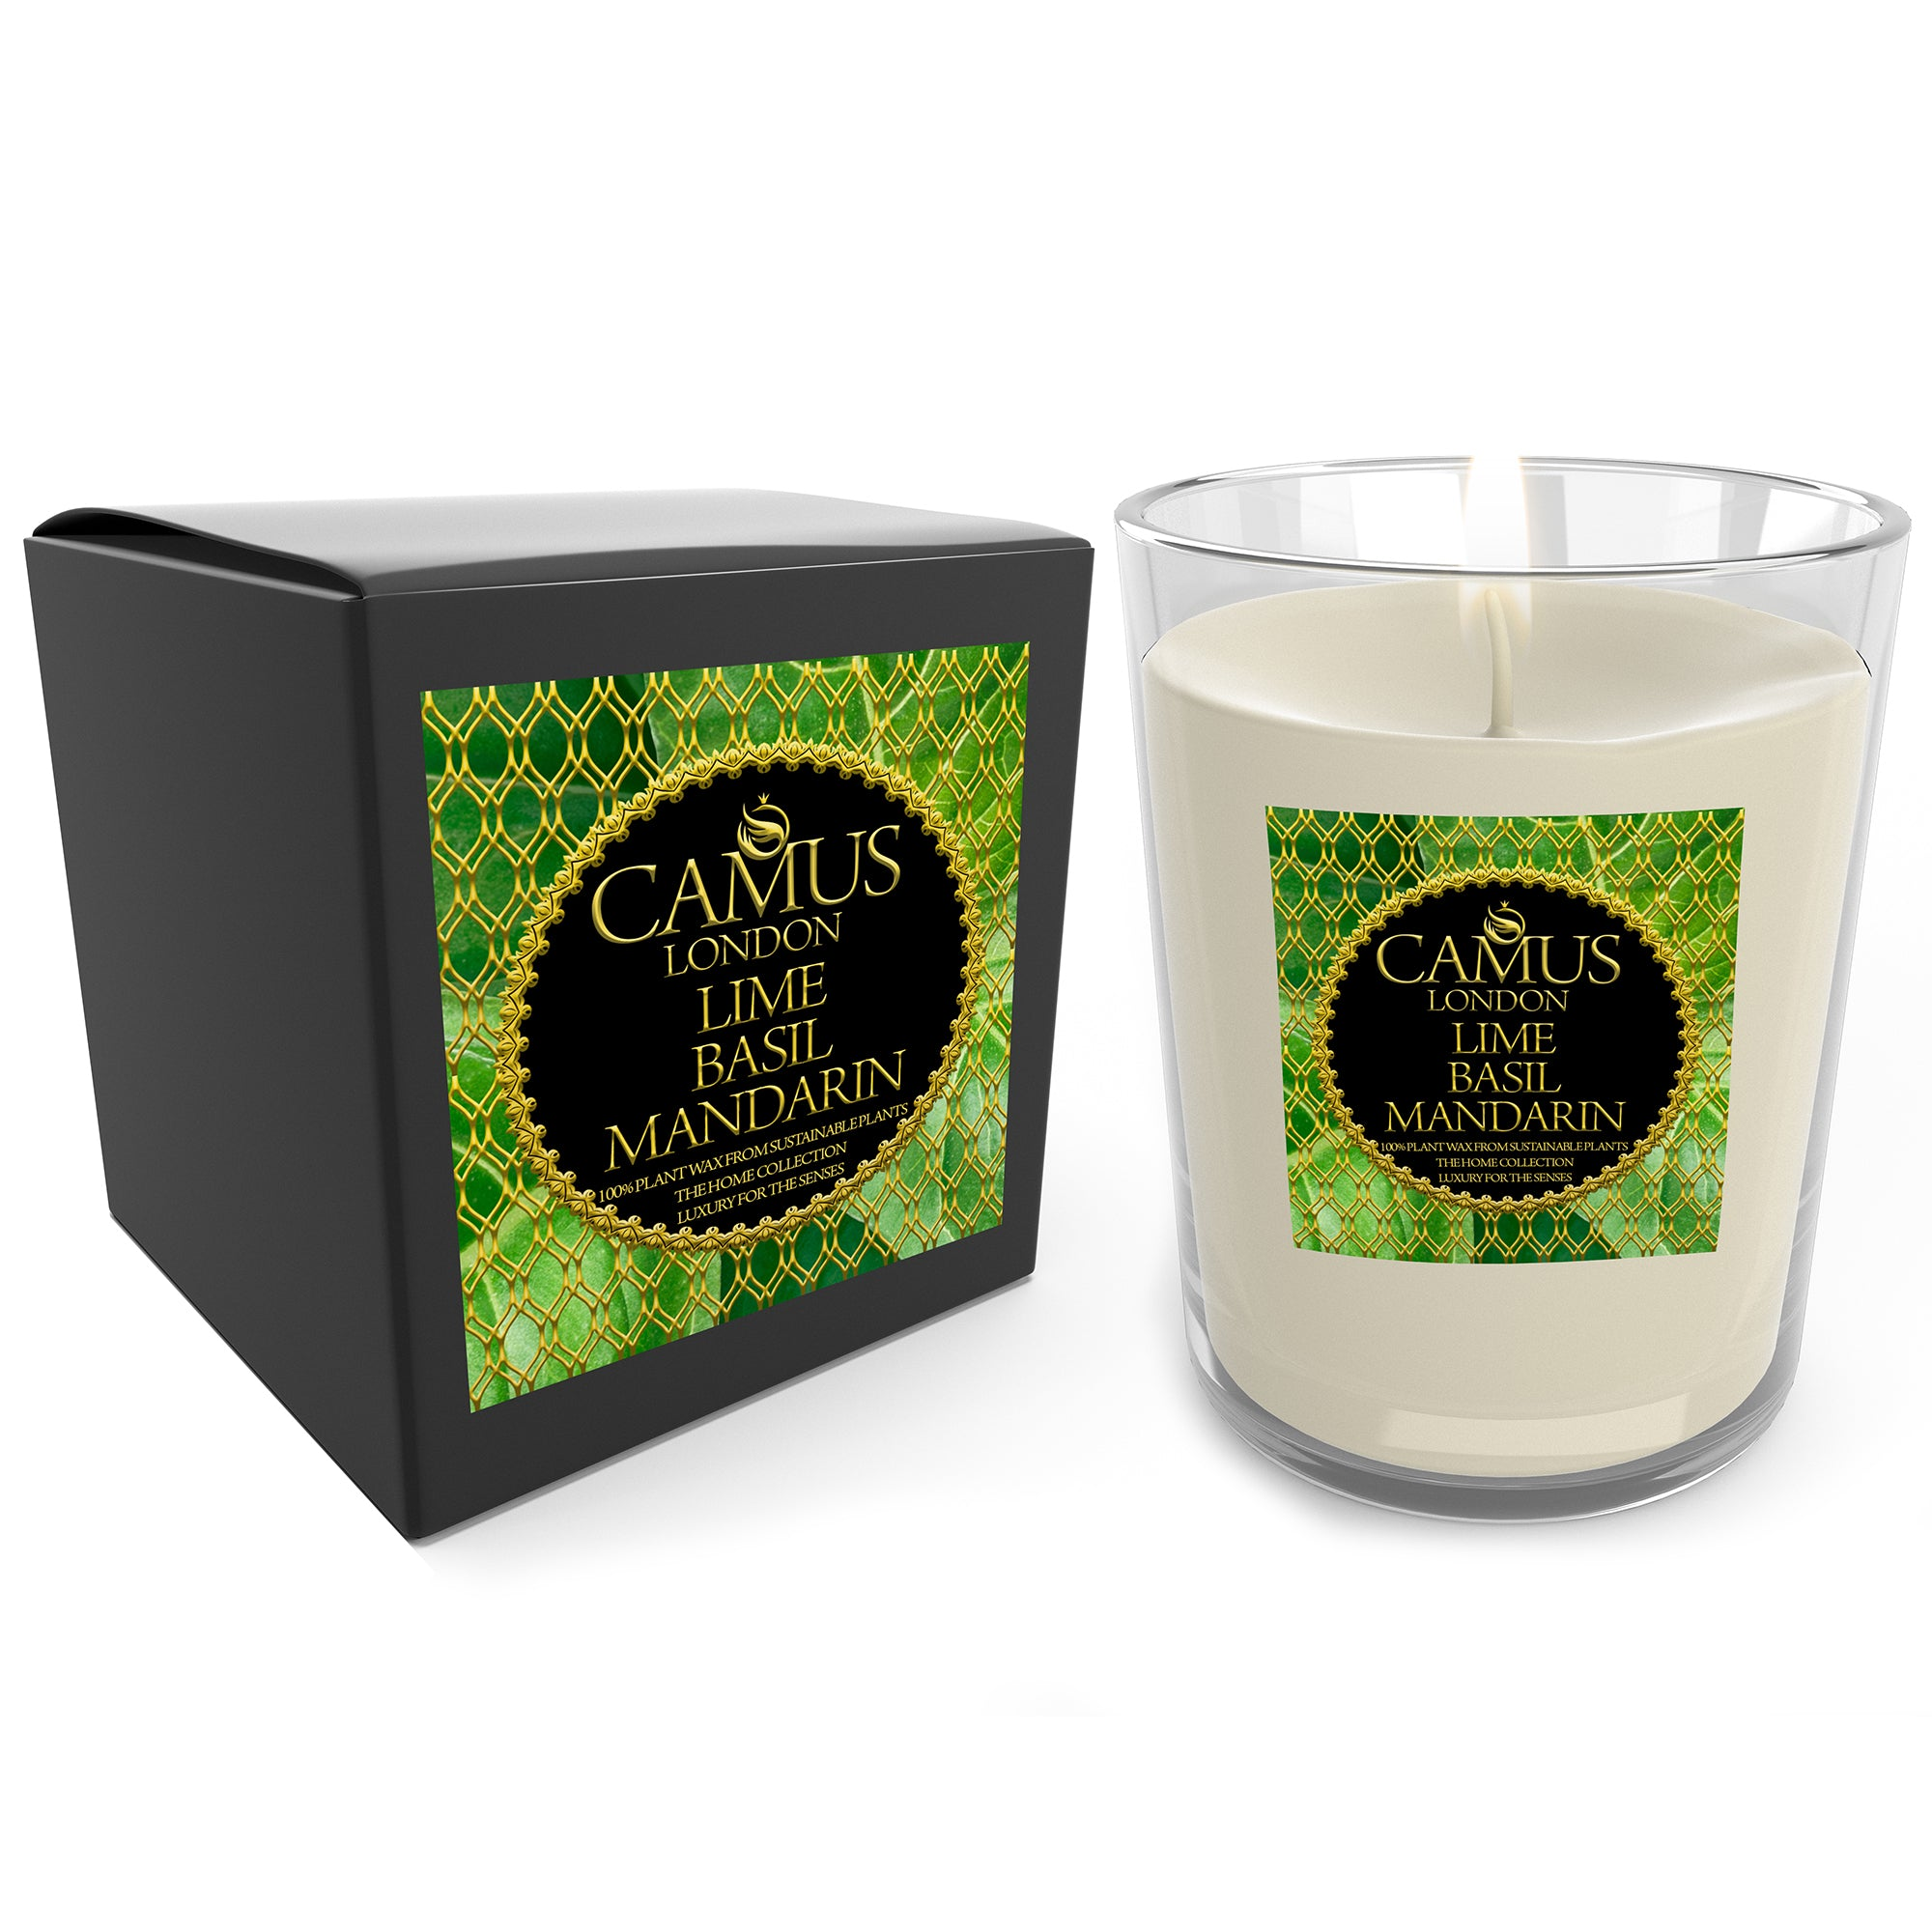 The Home Collection Essential Oil Lime Basil Mandarin Luxury Candle 100% Plant Wax